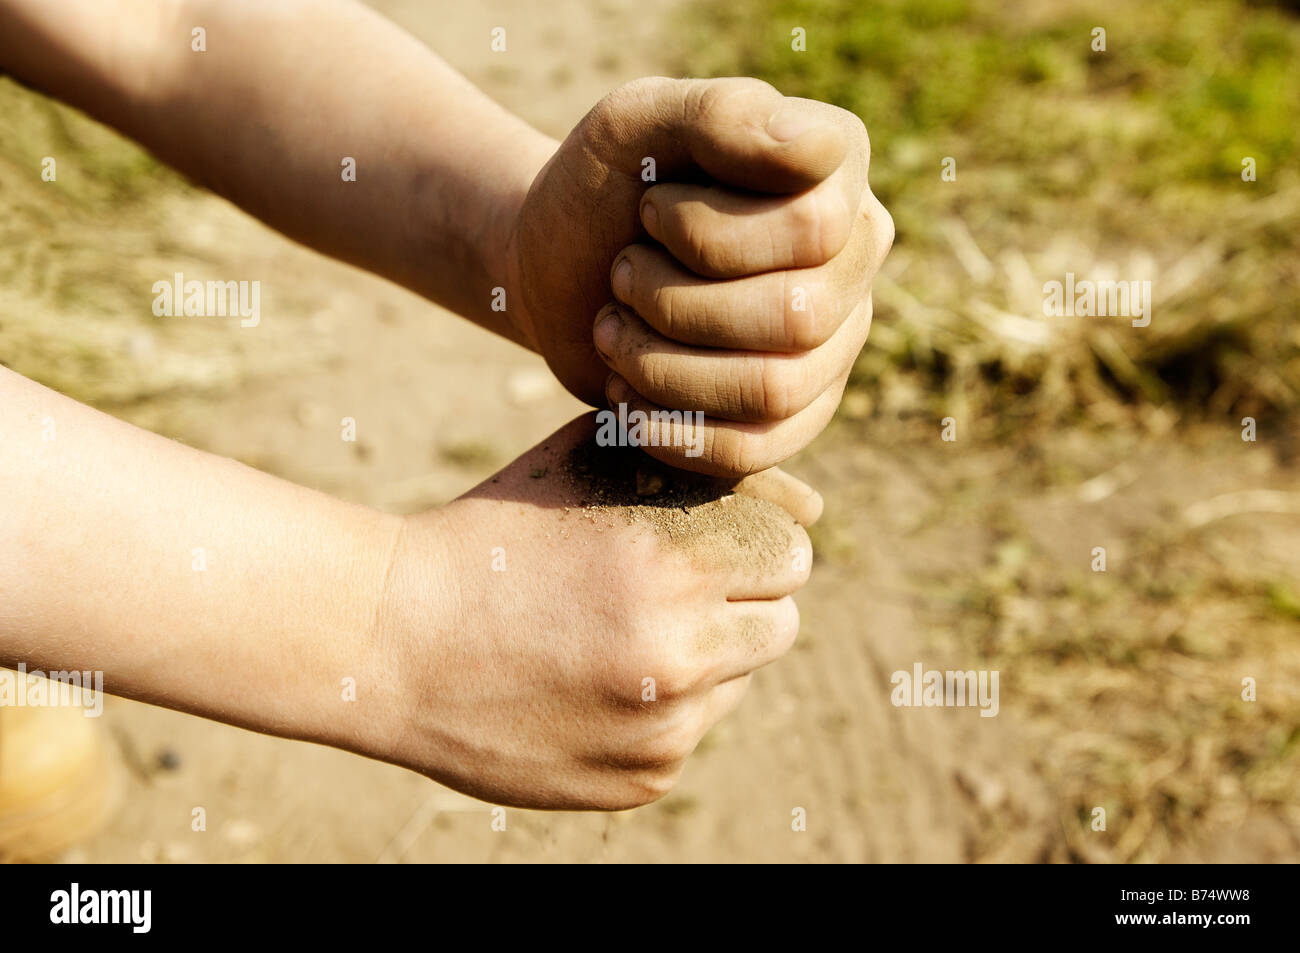 Young persons hands with dust or sand - Stock Image